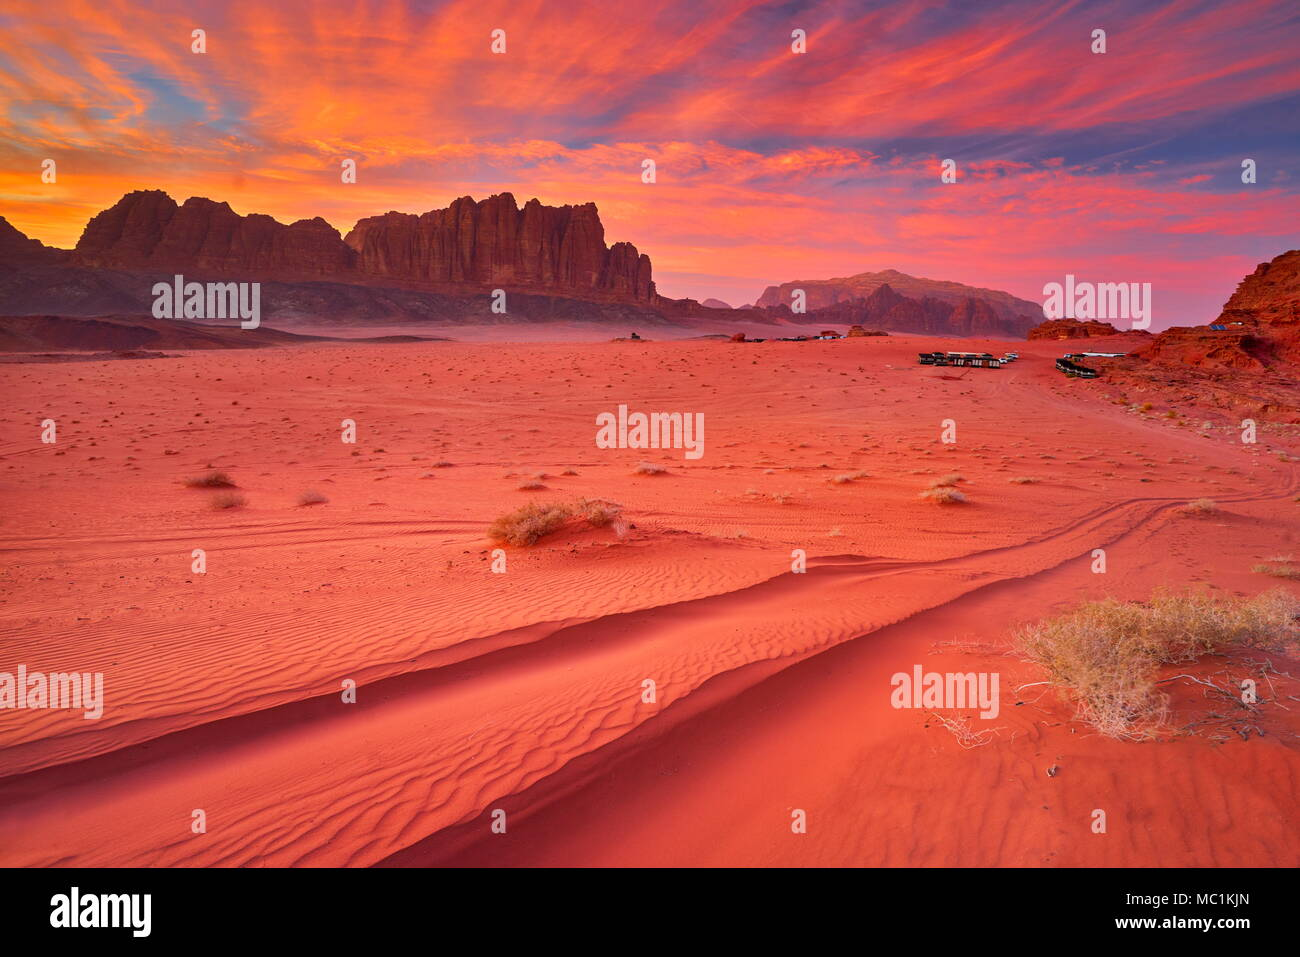 Wadi Rum Desert at sunset, Jordan - Stock Image